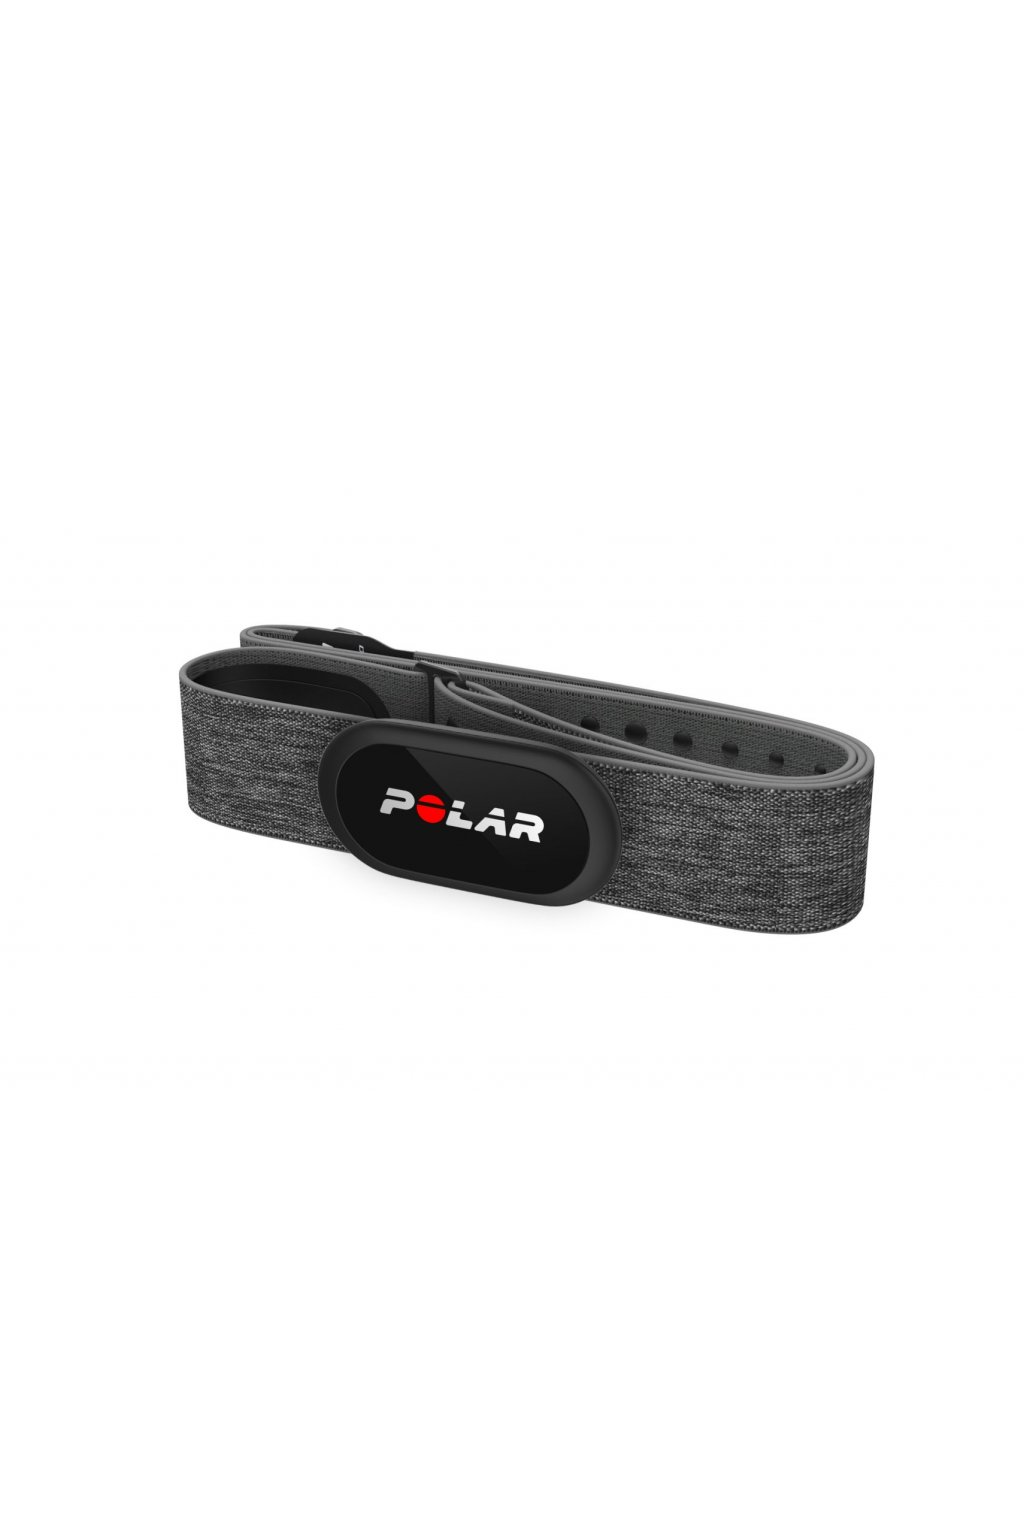 Polar H10 Heart Rate Sensor ProStrap frontleft grey